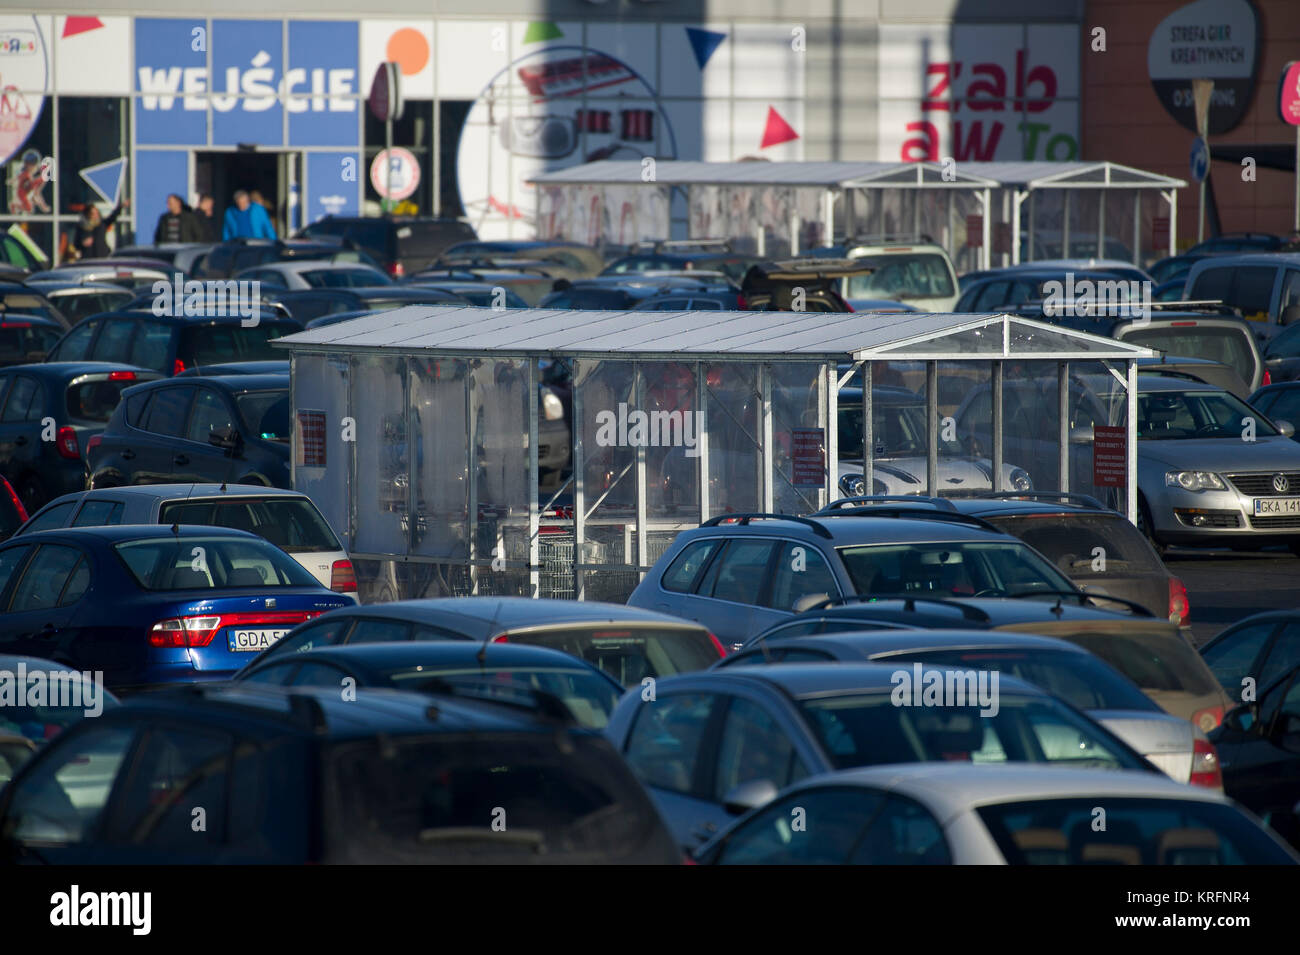 Gdansk, Poland. 20th Dec, 2017. Full parking of shopping mall Auchan before Christmas in Gdansk, Poland. 20th Dec. - Stock Image